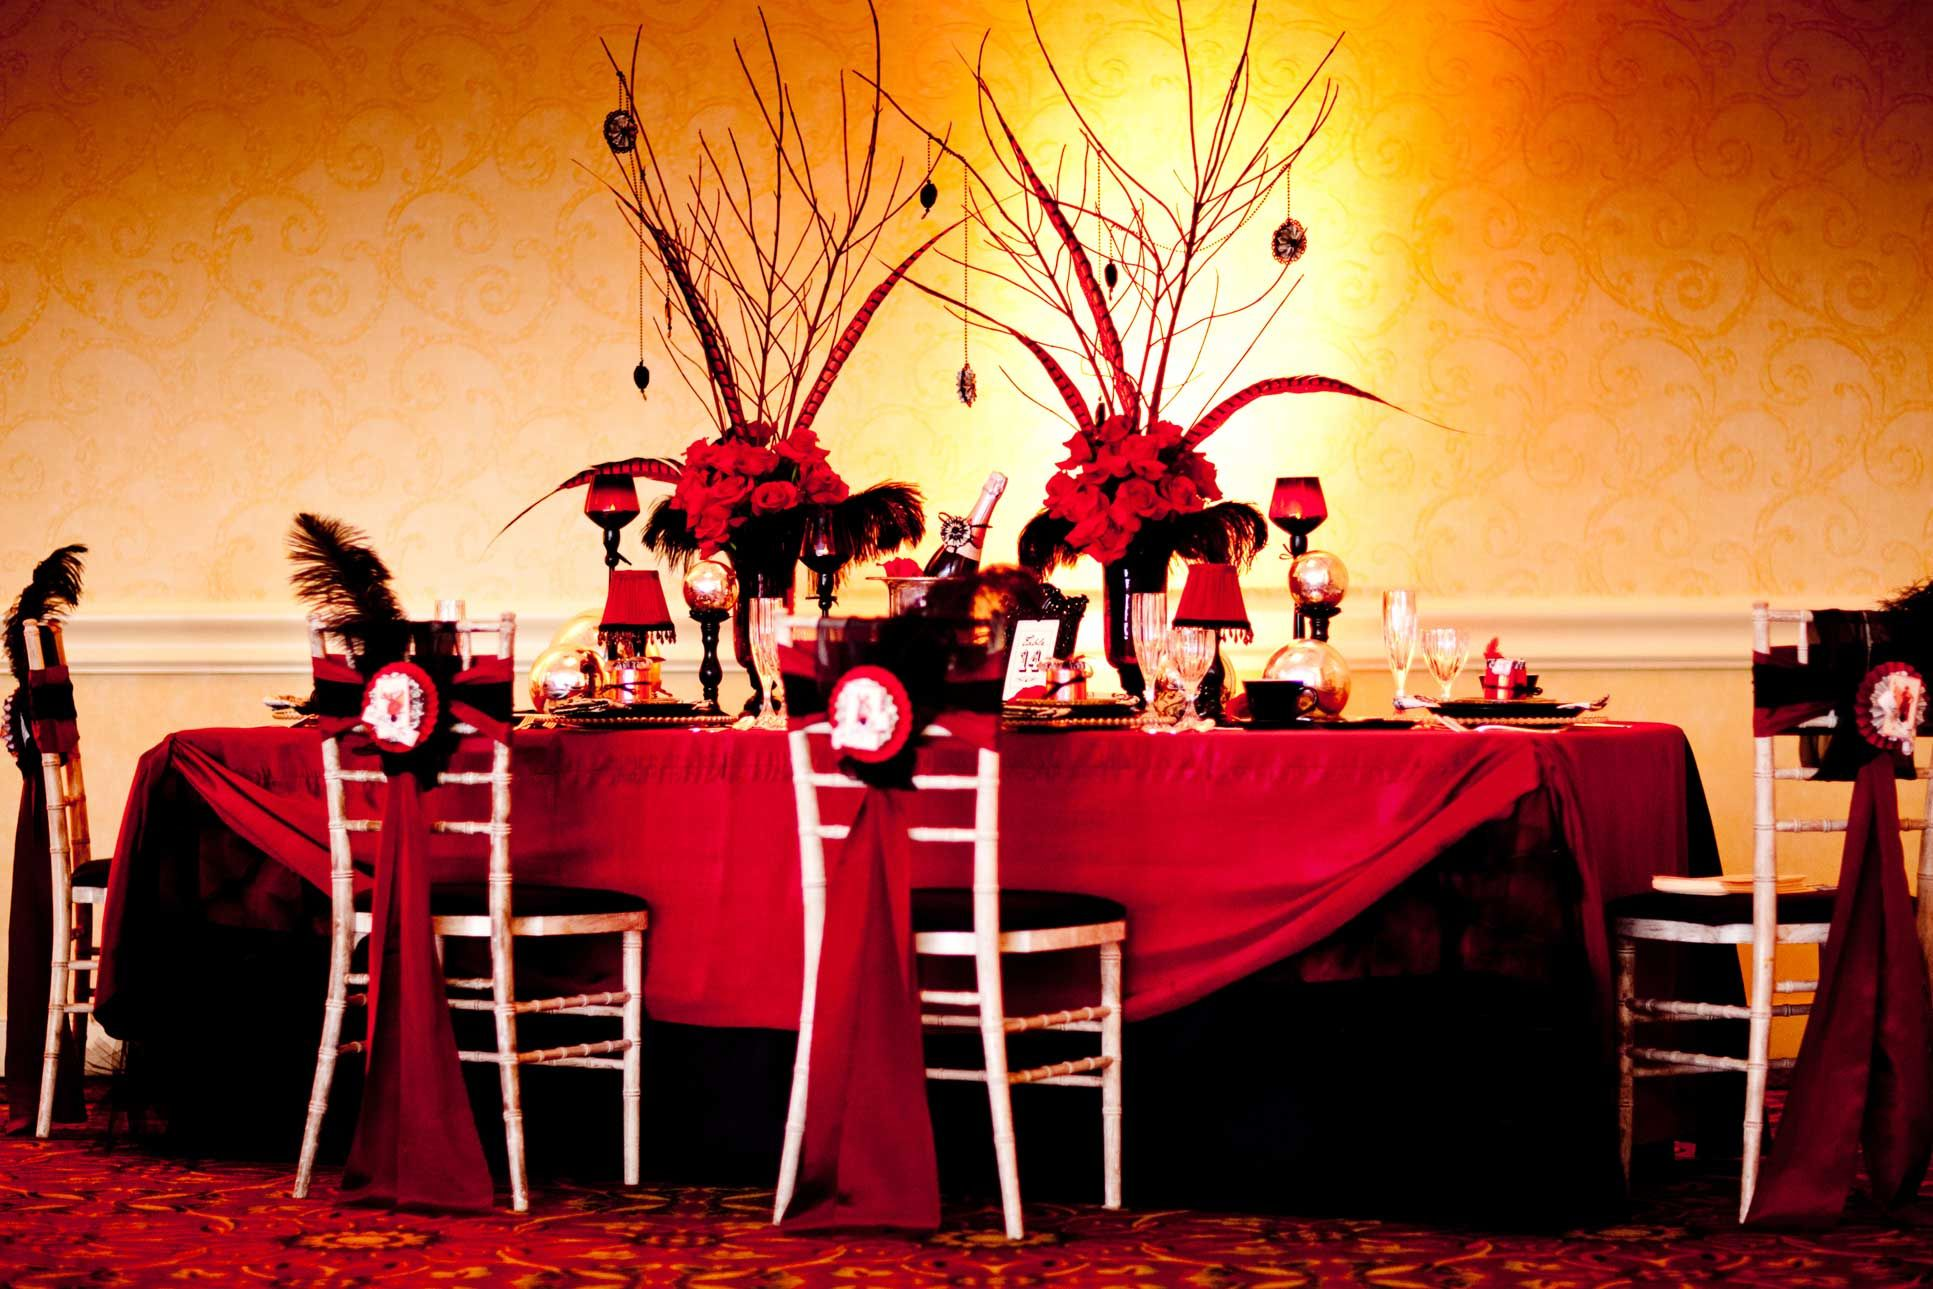 Moulin rouge party moulin rouge party pinterest - Table Setting Inspiration Moulin Rouge Burlesque Partyburlesque Bachelorette